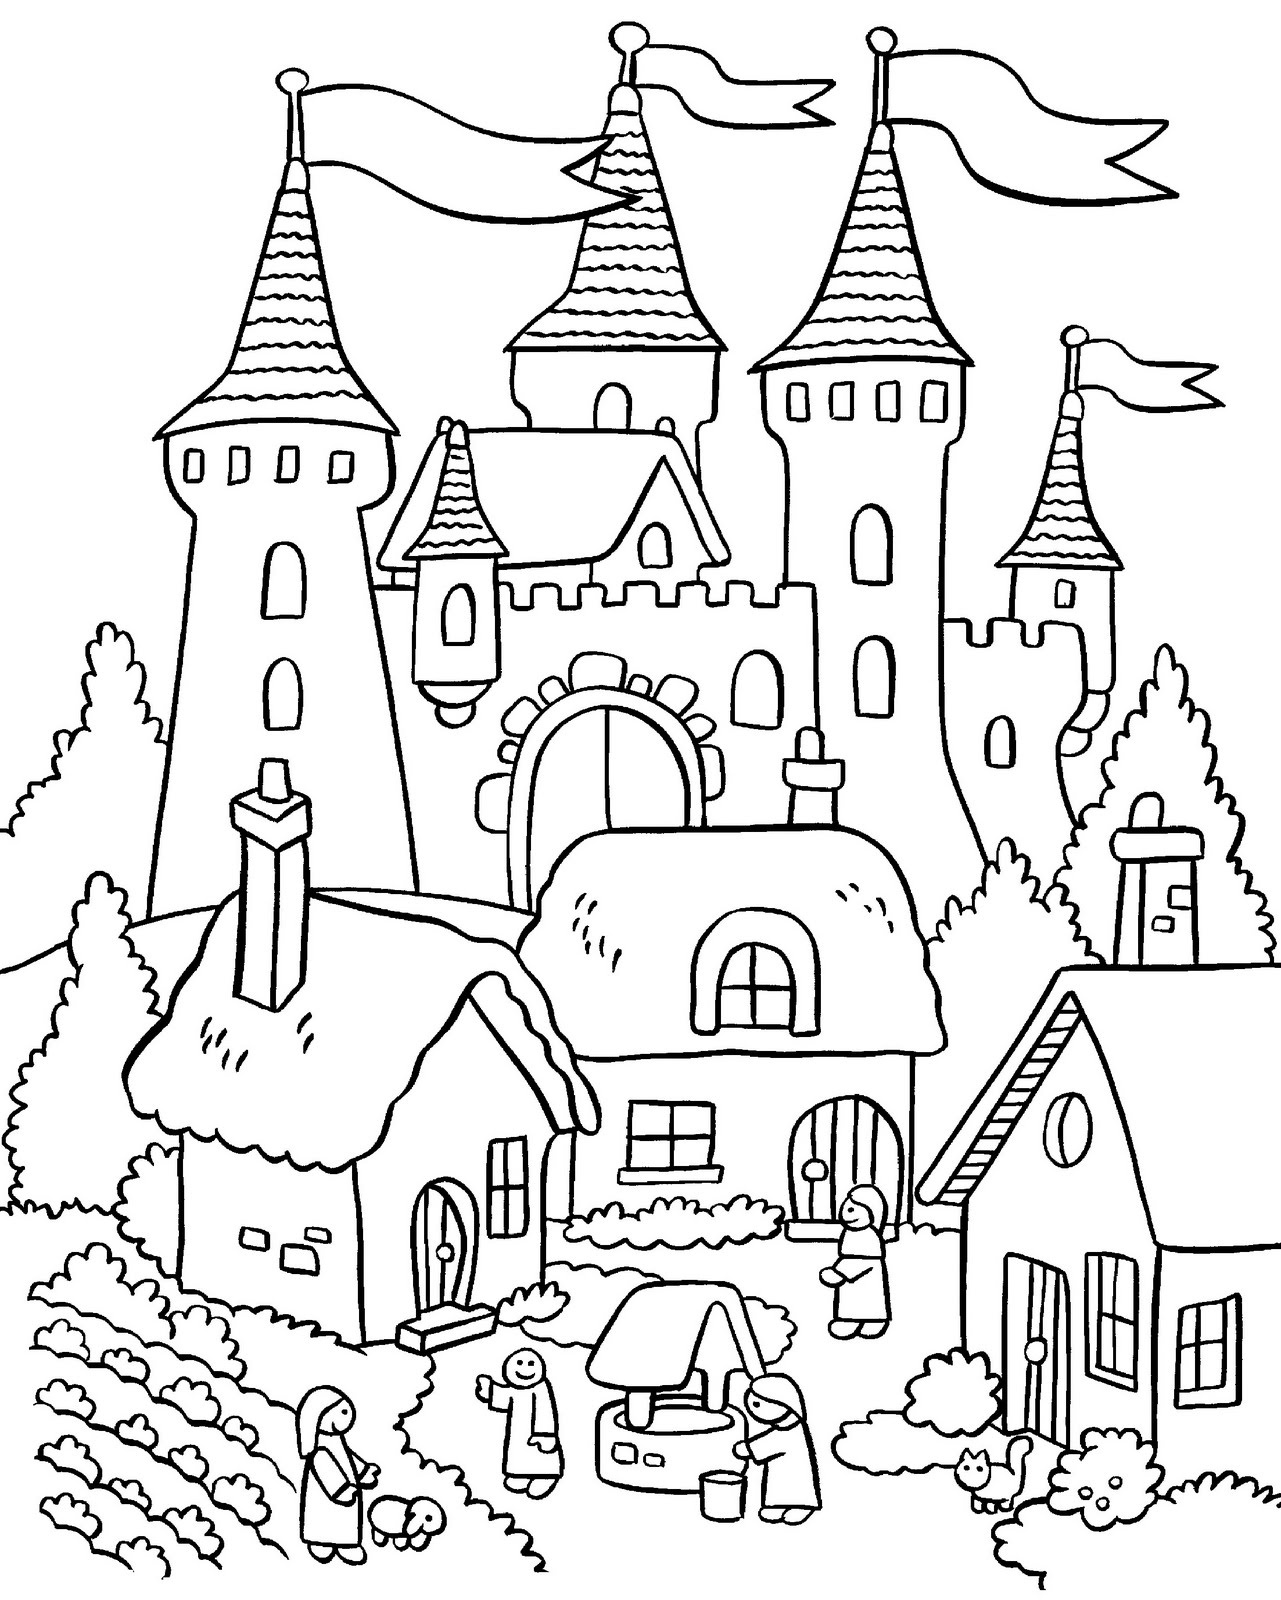 garden colouring pages for kids kids gardening coloring pages free colouring pictures to print garden colouring kids pages for